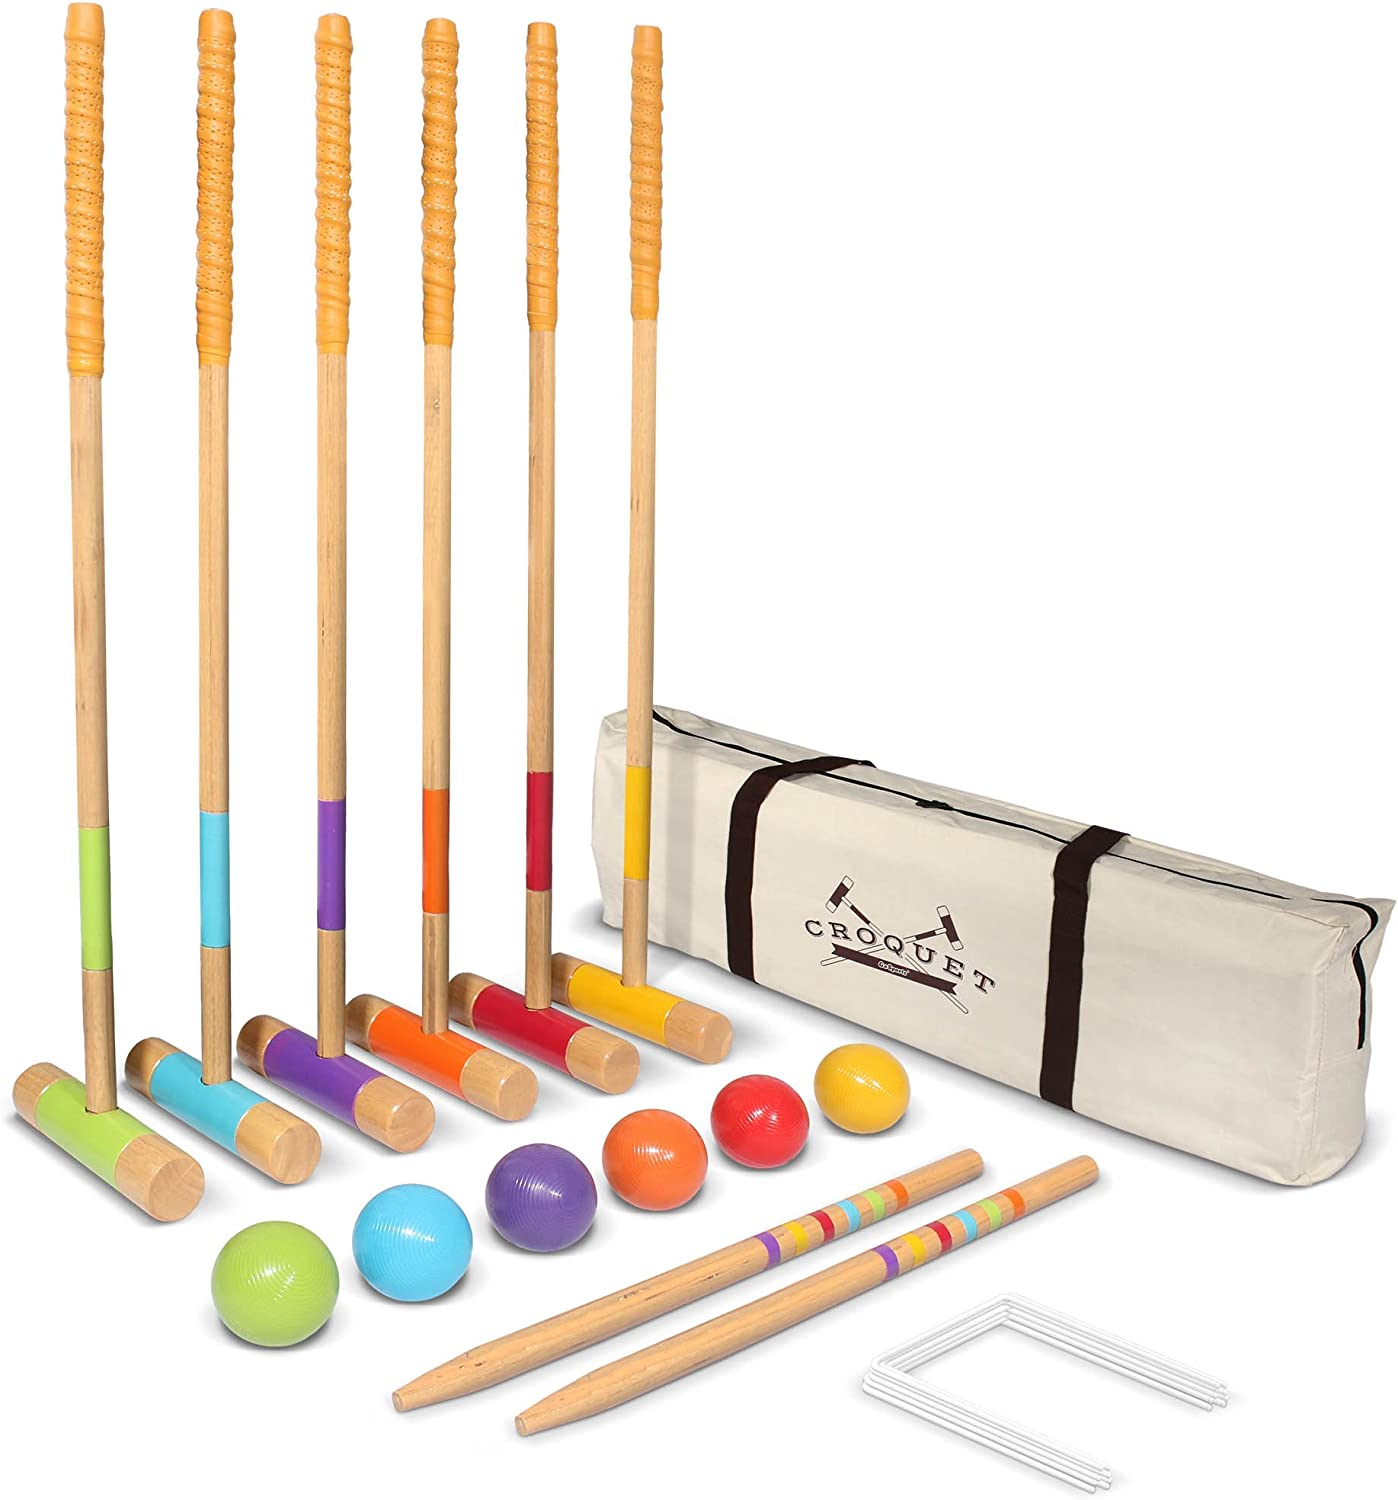 """GoSports Six Player Croquet Set for Adults & Kids - Modern Wood Design with Deluxe (35"""") and Standard (28"""") Options"""